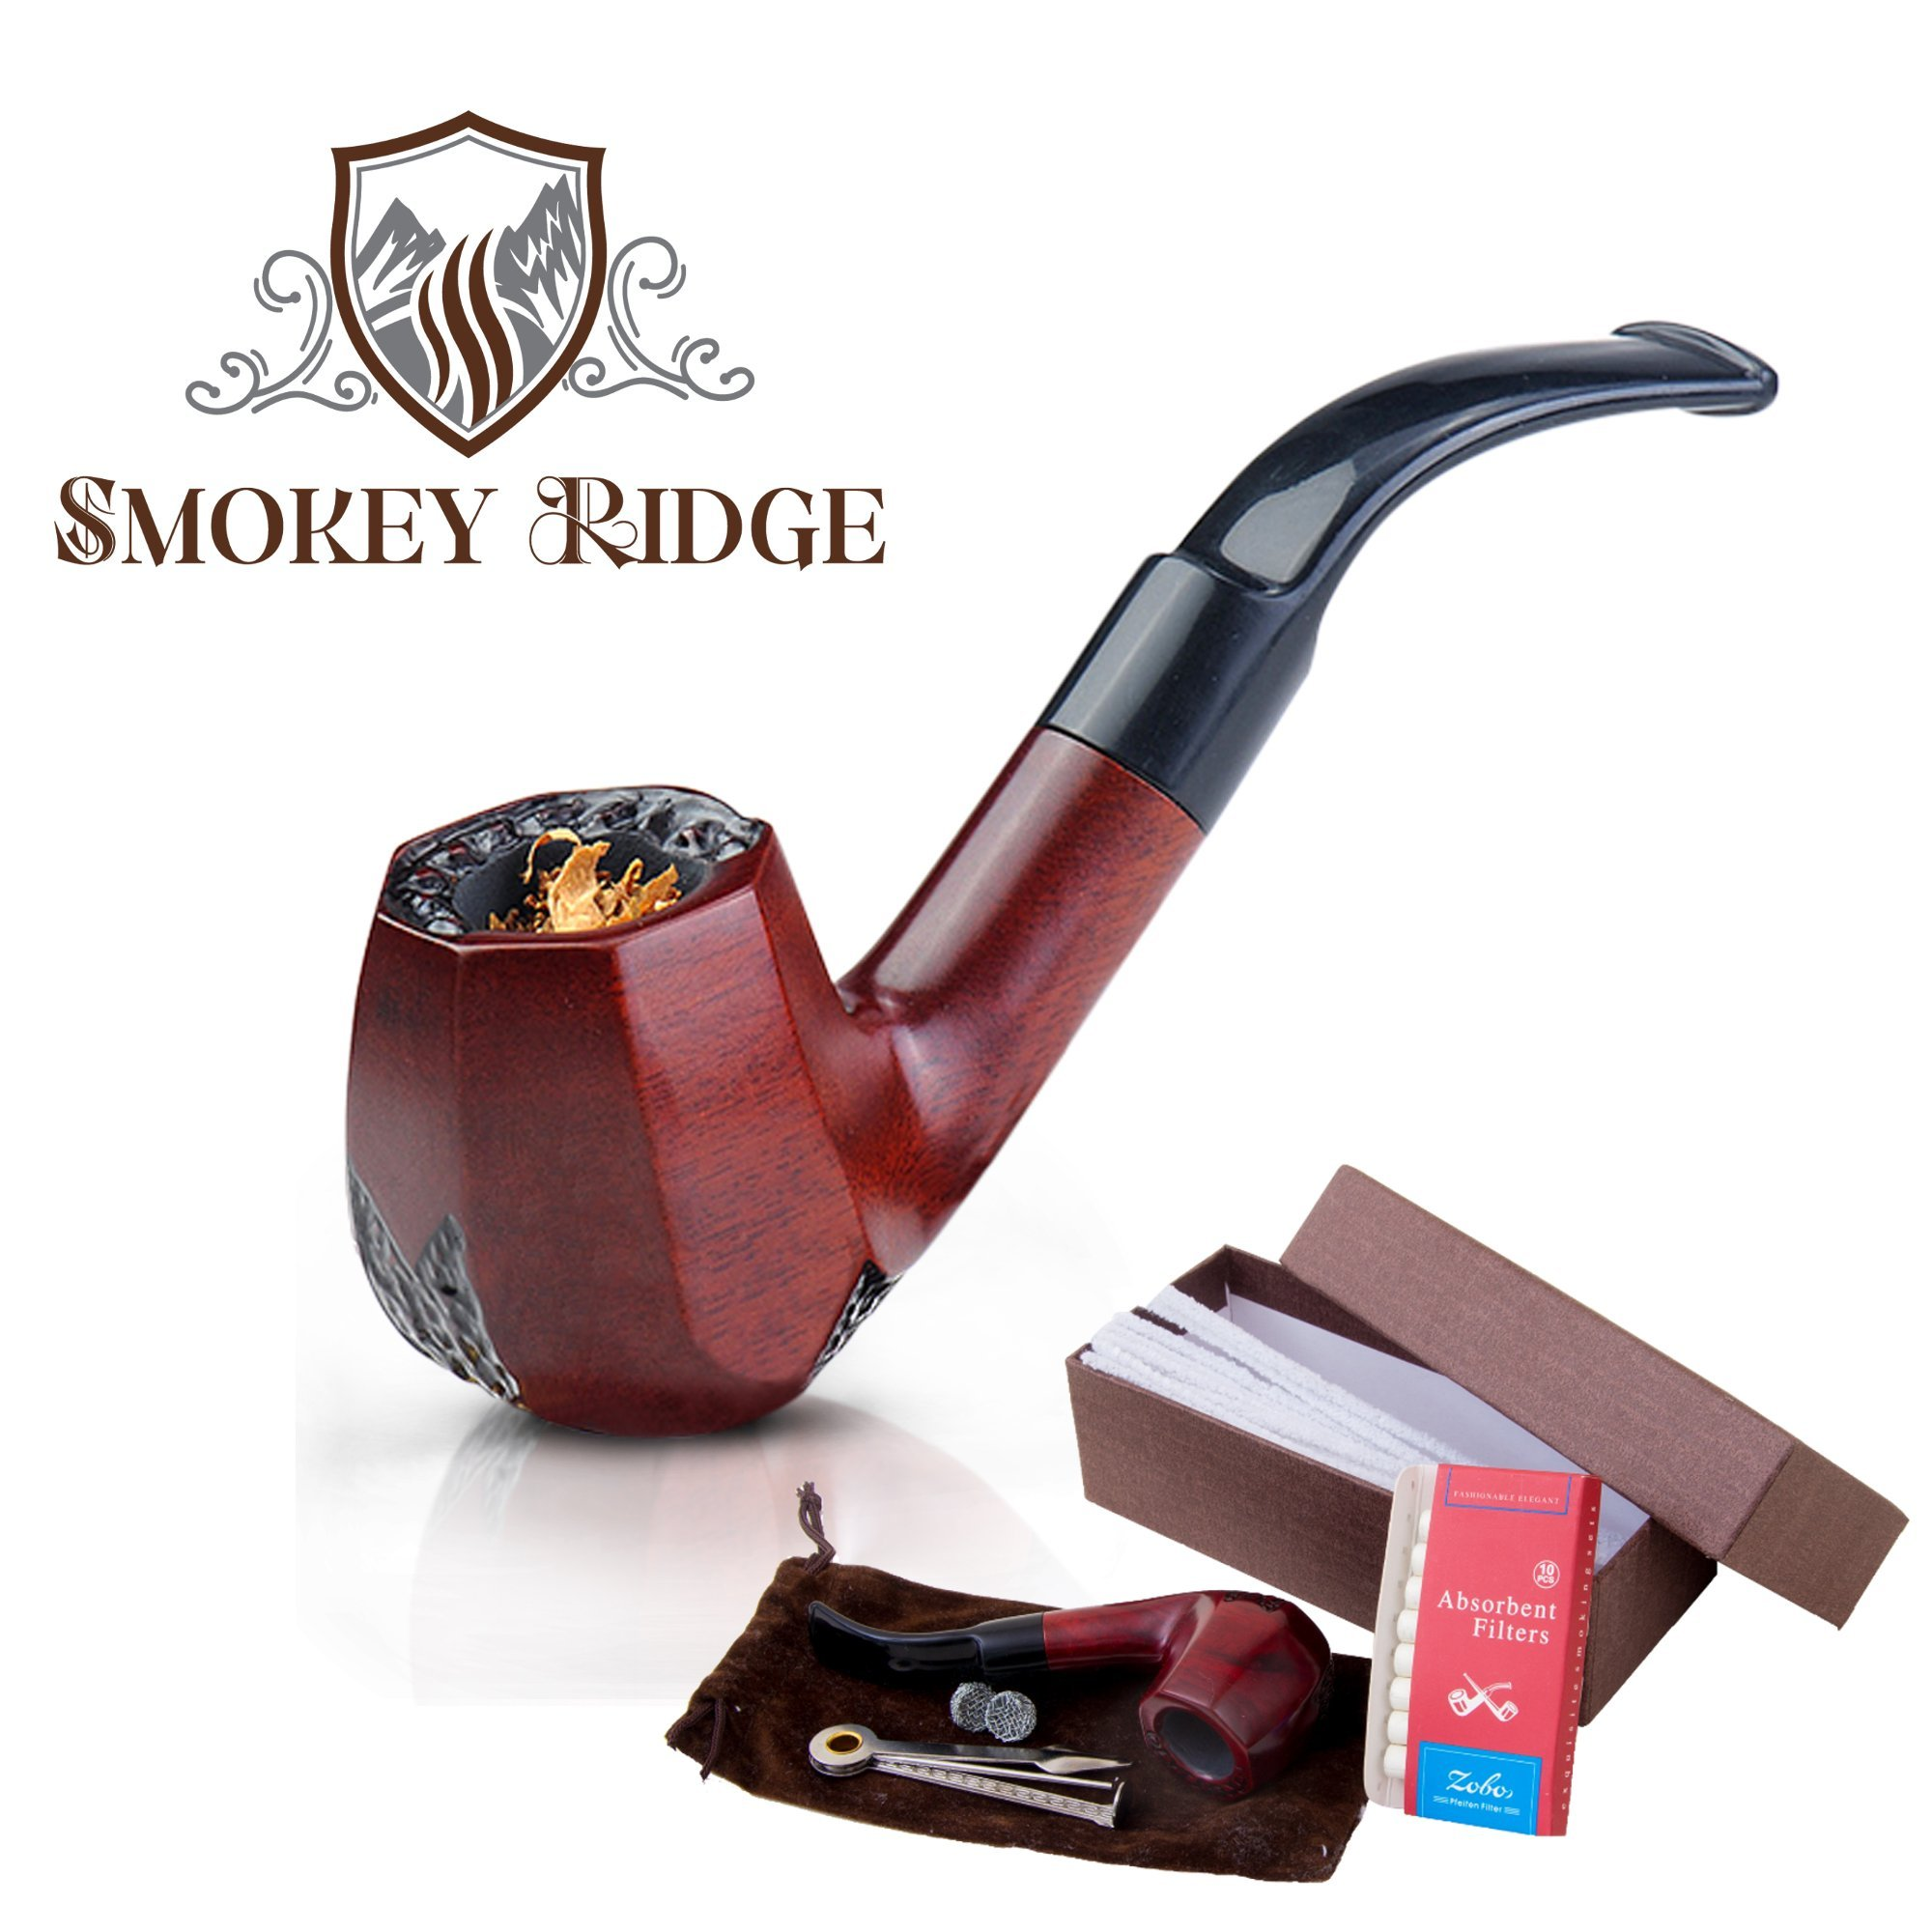 Tobacco Pipe with a Gift Accessories Set. Premium Handcrafted Red Wood Tobacco Smoking Pipe, Perfect Gentleman's Gift of a Vintage Wooden Smoking Pipes for Tobacco-Aurora by Smokey Ridge Tobacco Pipes